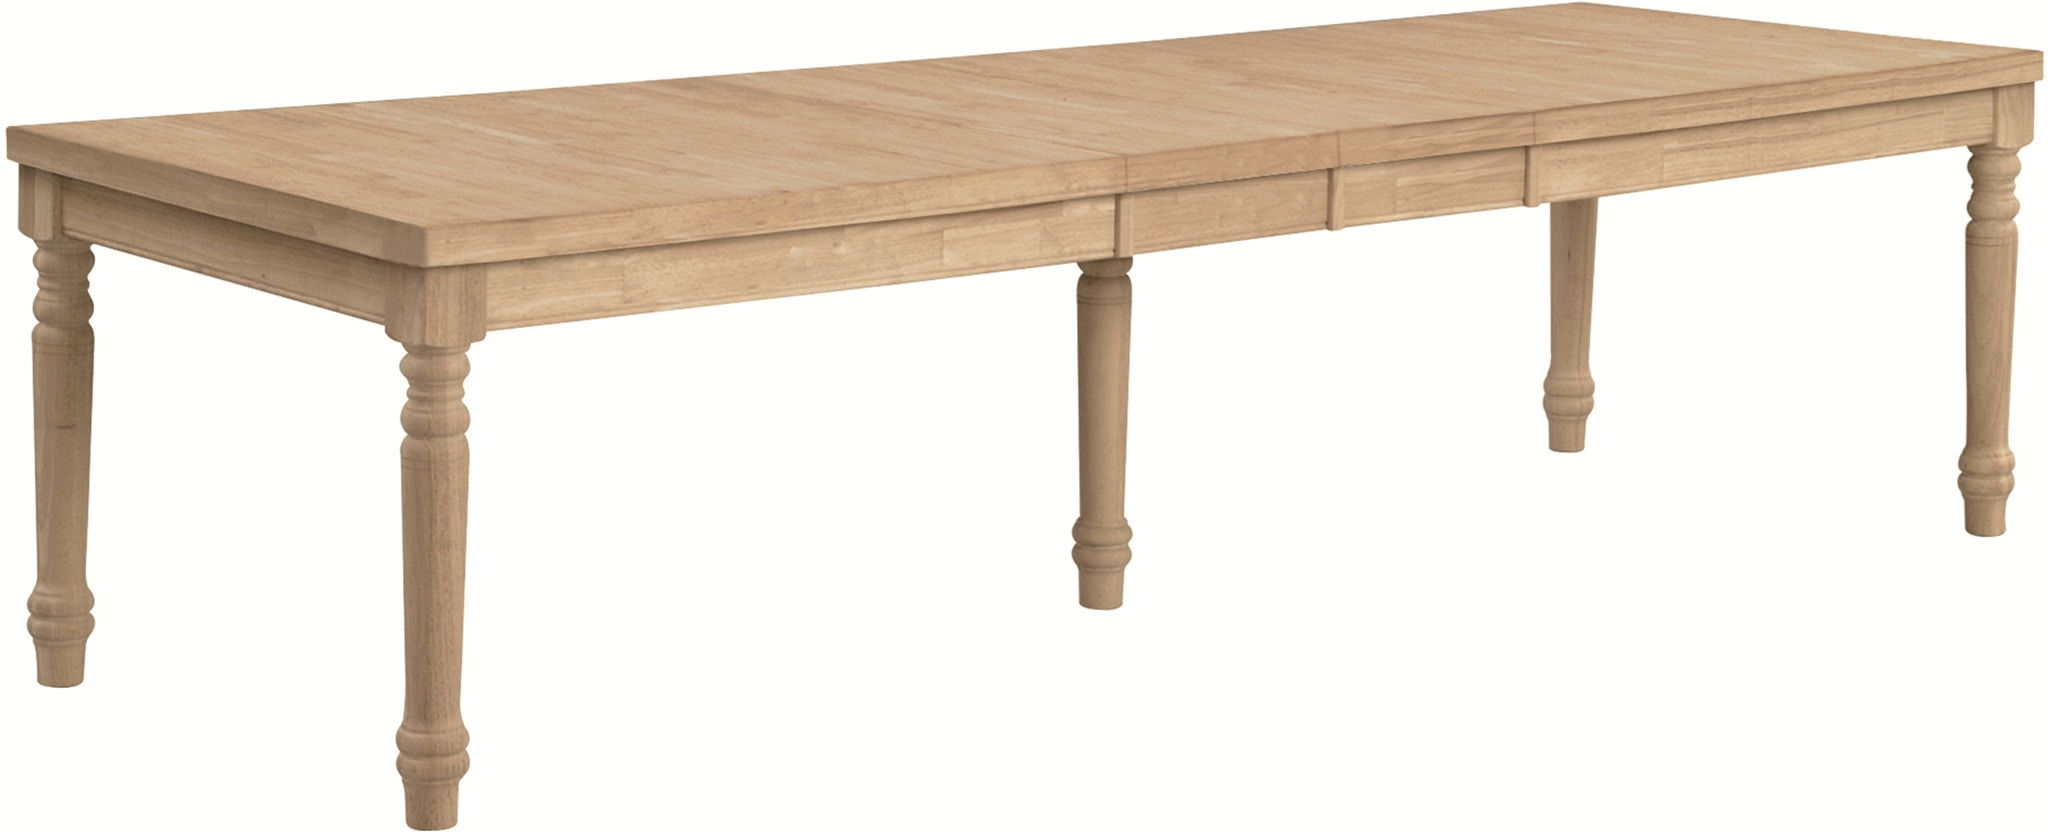 John Thomas Dining Room Large Extension Table Top Only